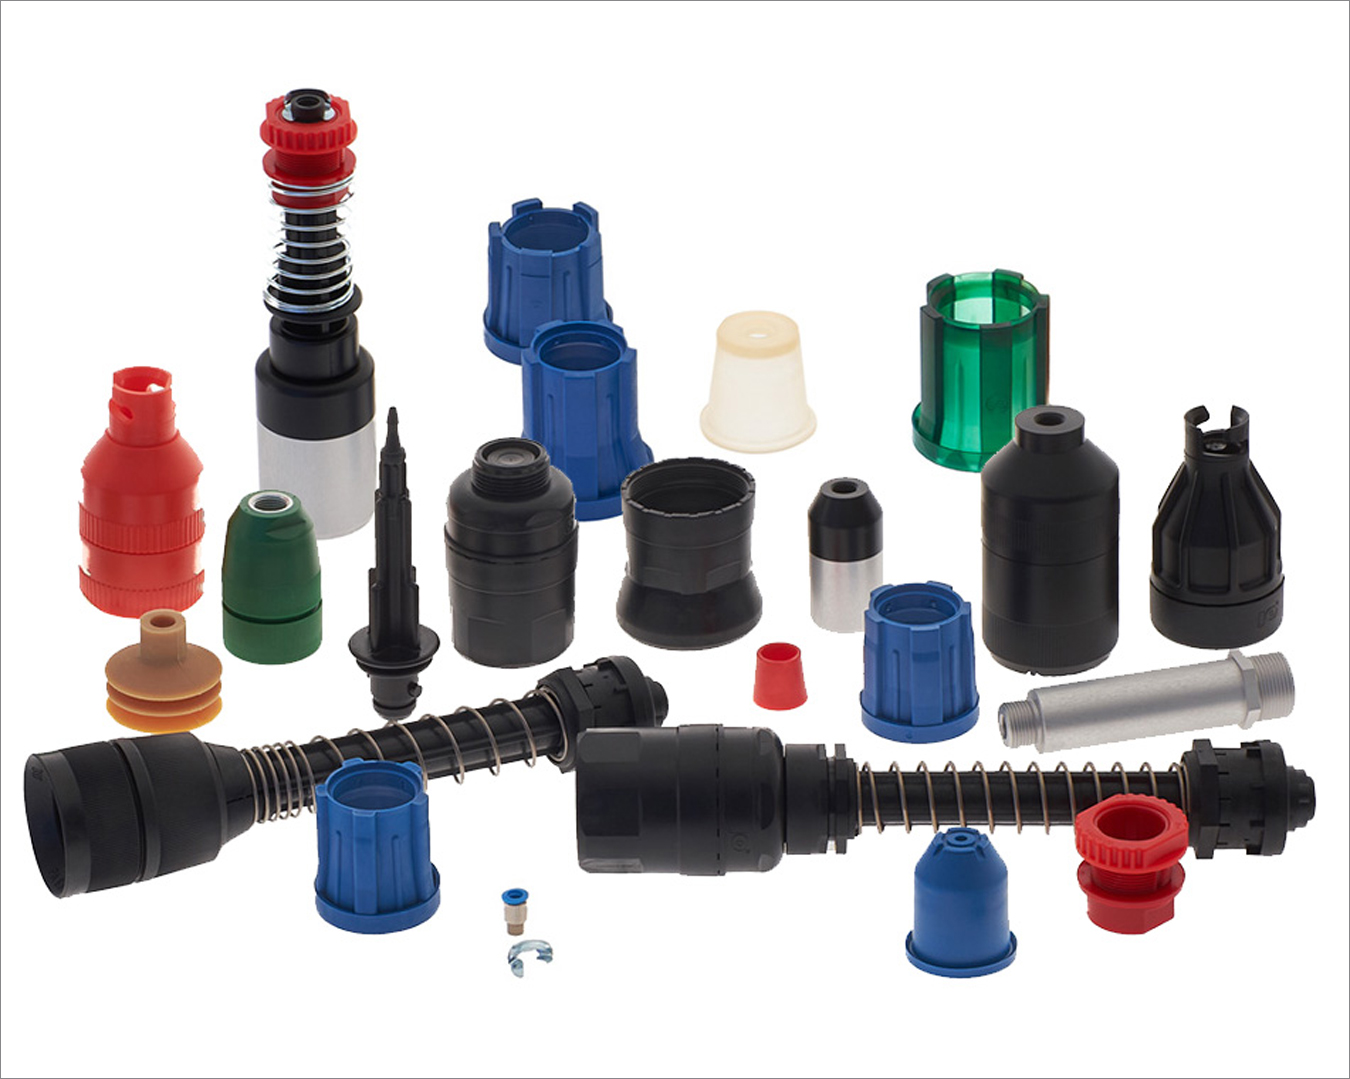 Product picture of Gripping units for Packing, Sorting & Orientation